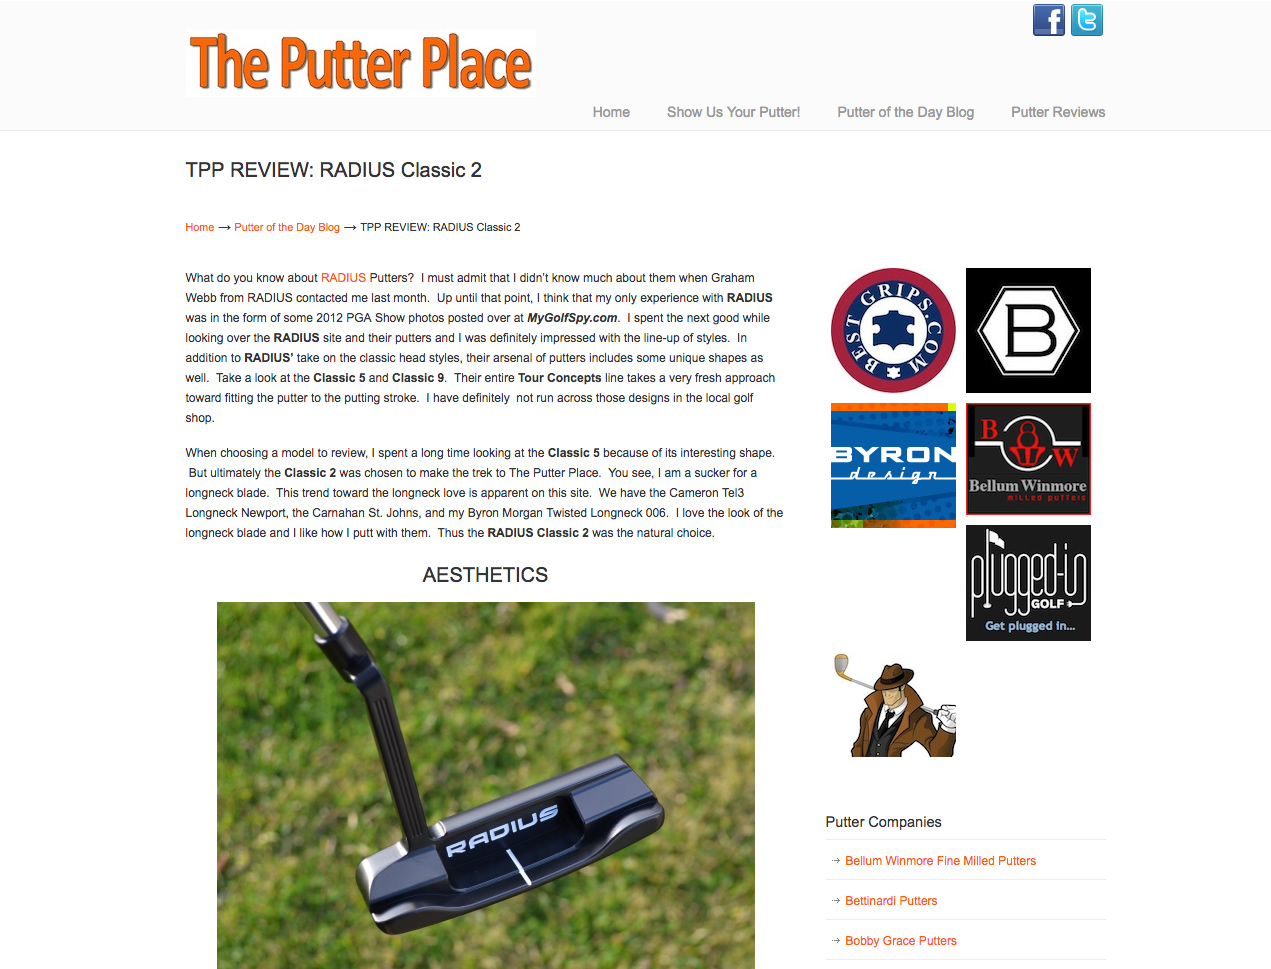 The Putter Place Review